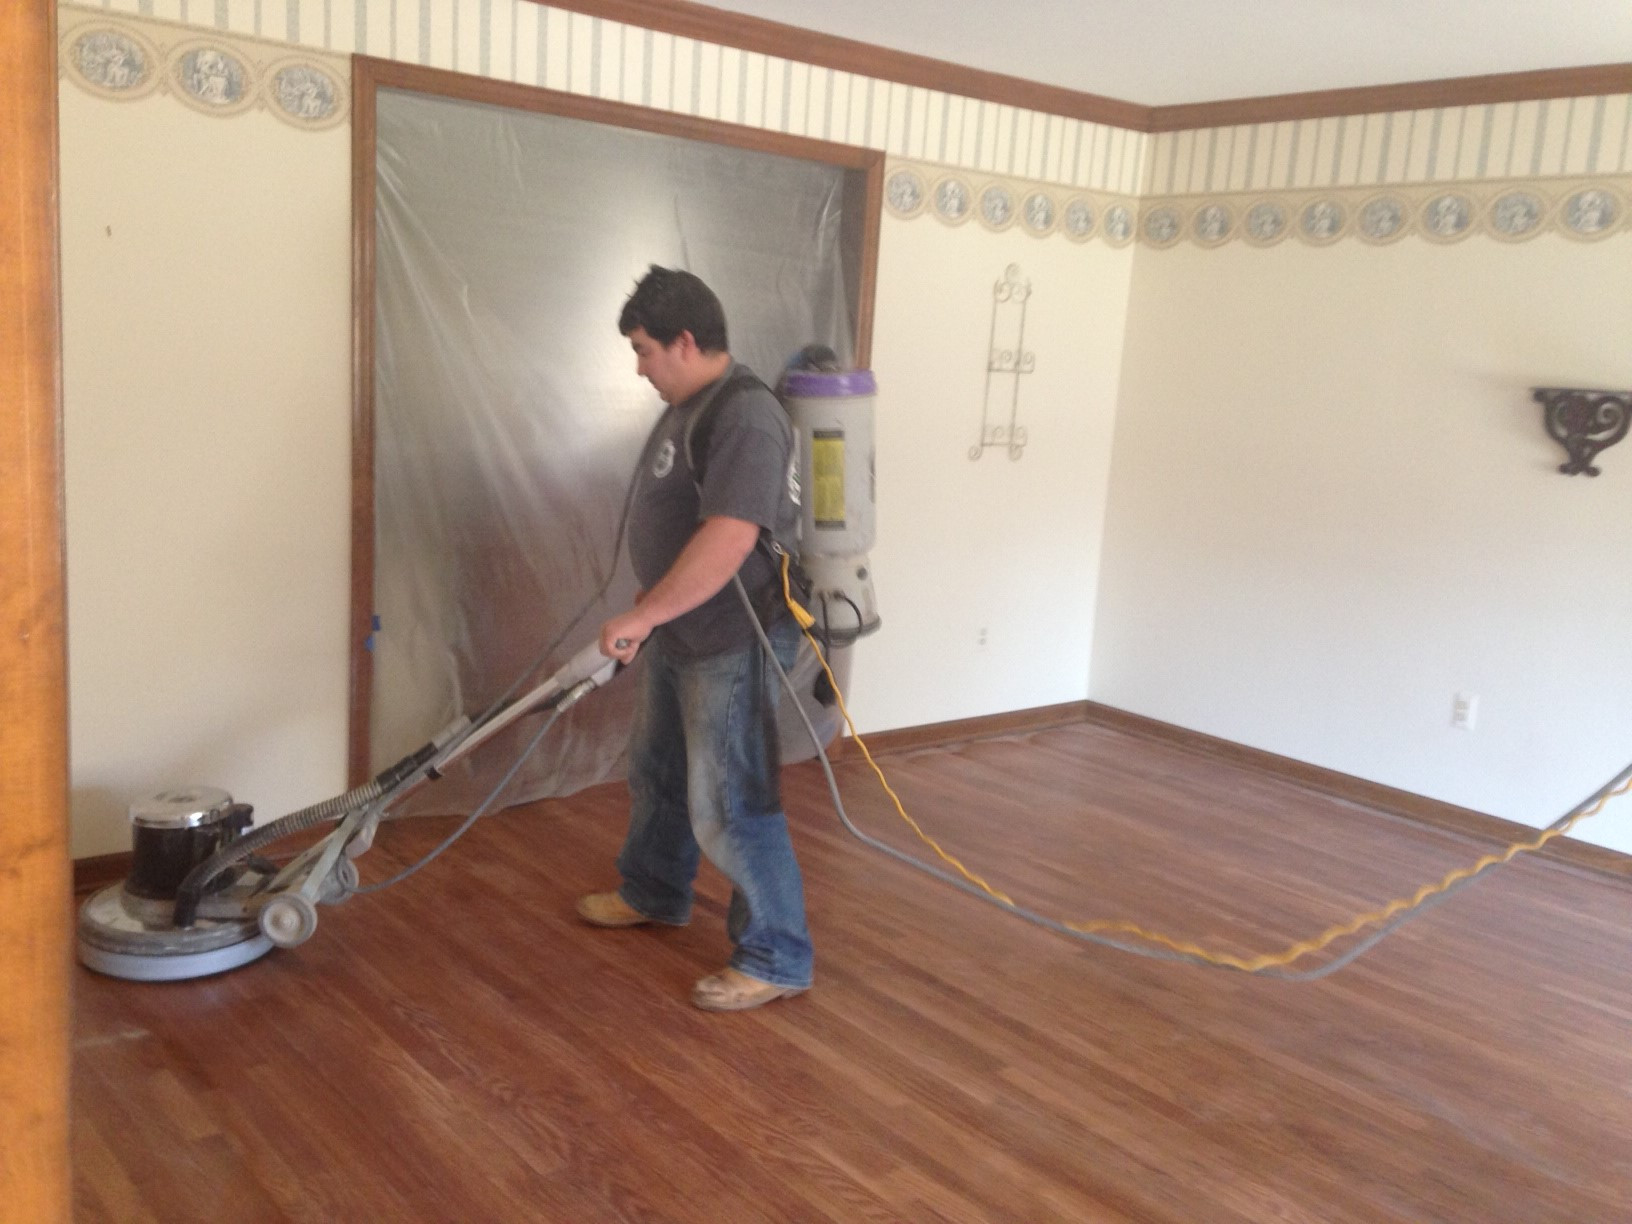 hardwood floor refinishing morris county nj of f b c hardwood flooring contractor in new jersey regarding staining and installing wood floor services flooring solutions for every job